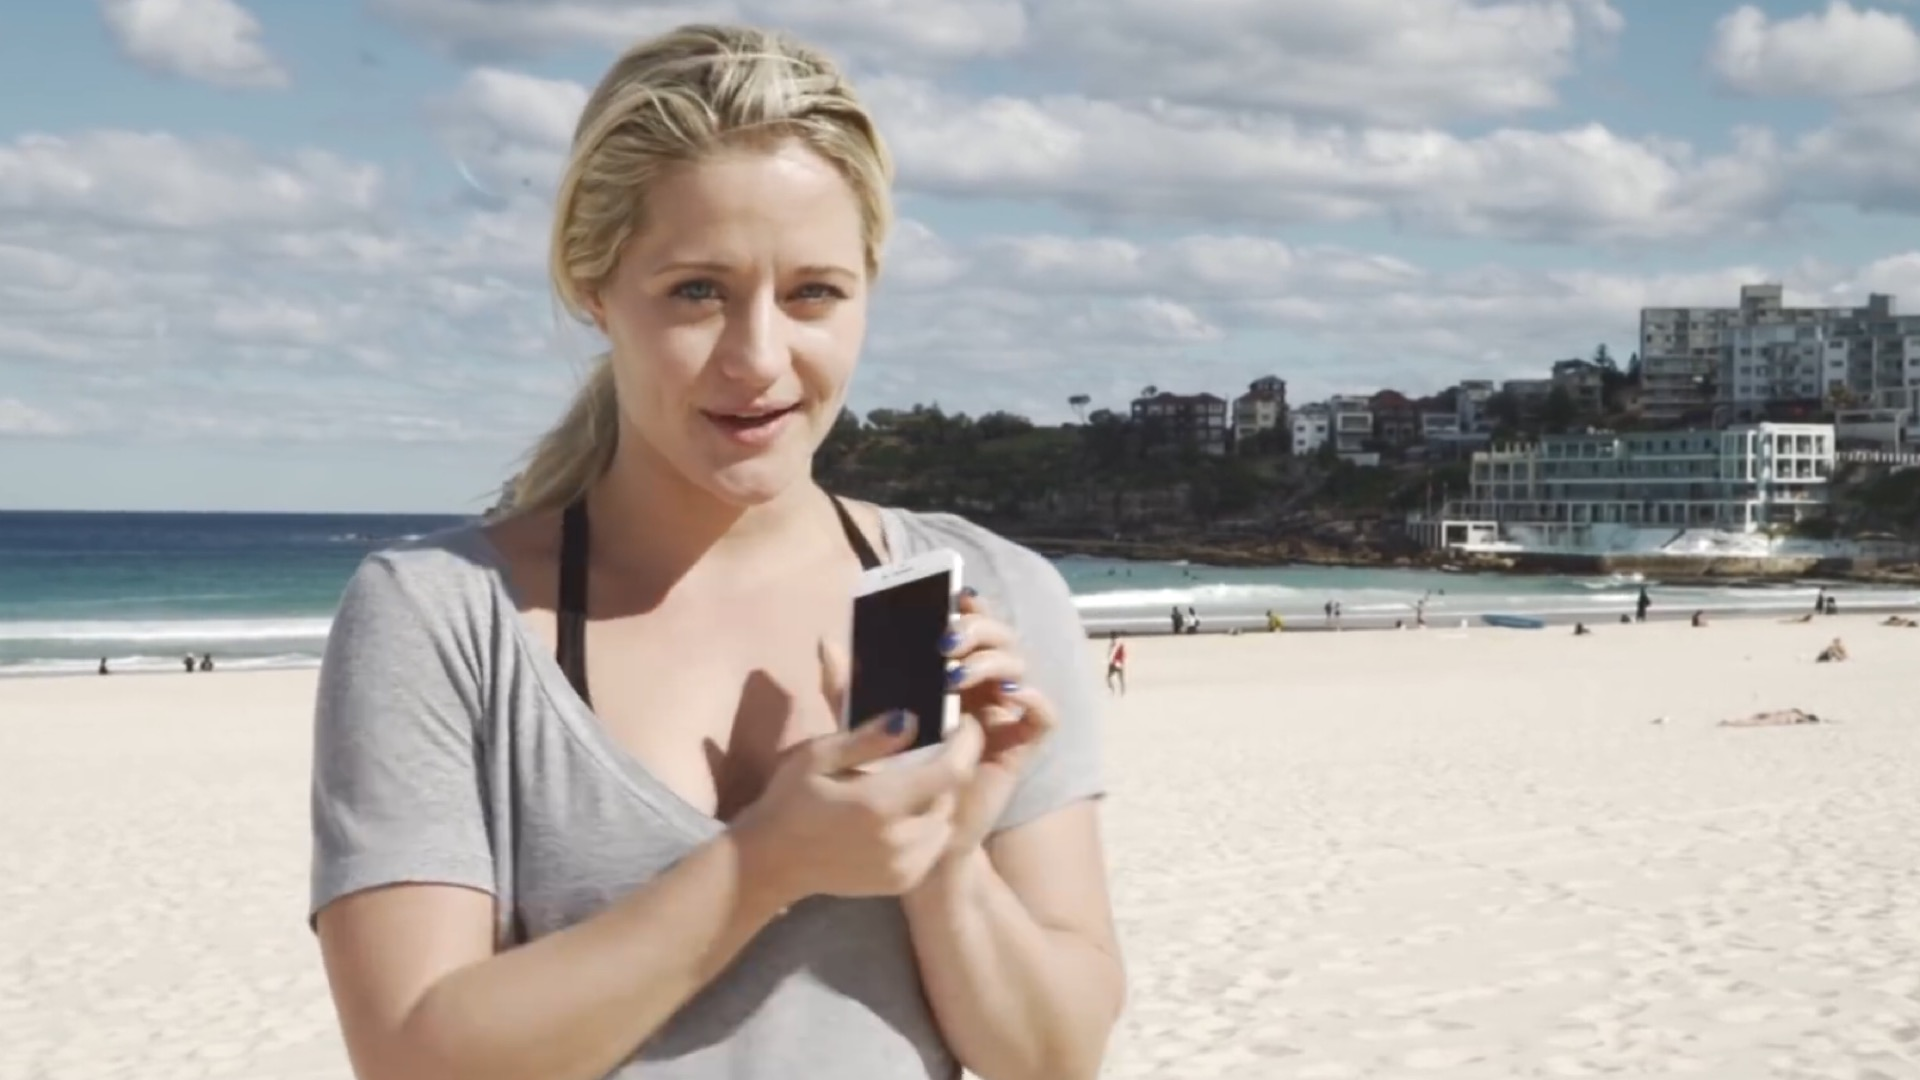 Photo of iPhone 7 Proves Water Resistant at Sydney's Bondi Beach